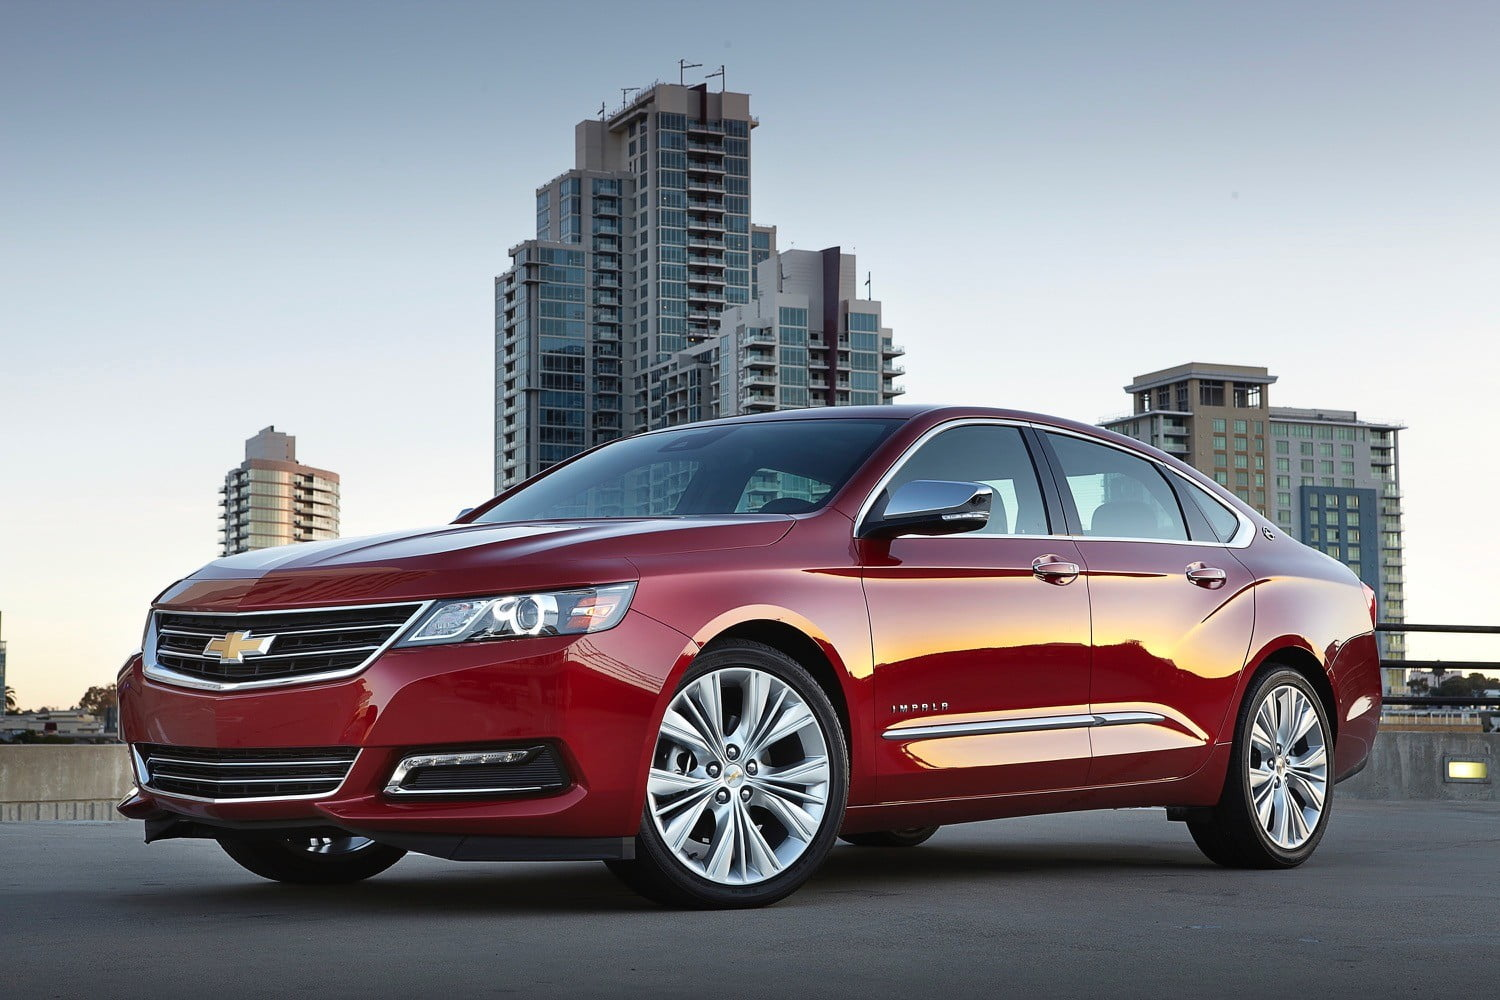 General Motors Axes Chevrolet Impala Volt Cruze In Cost Cutting